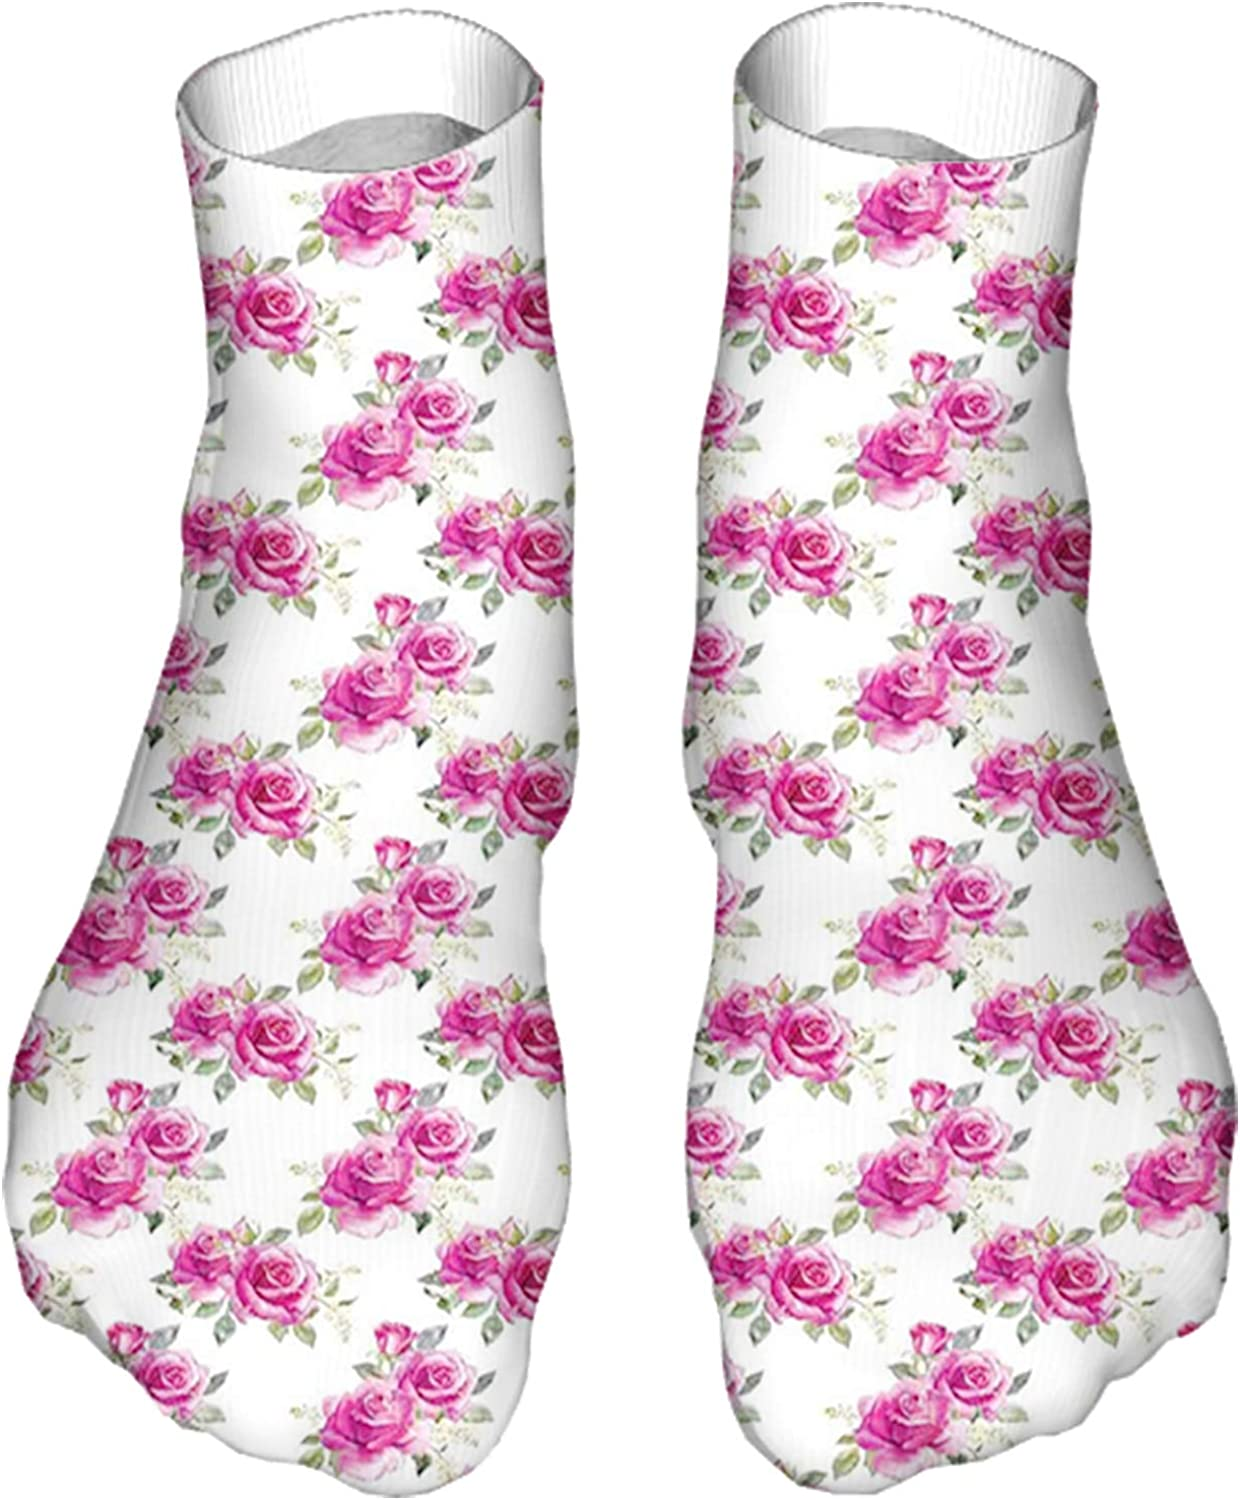 Men's and Women's Funny Casual Socks Nosegay of Roses and Wildflowers Design Watercolor Paint